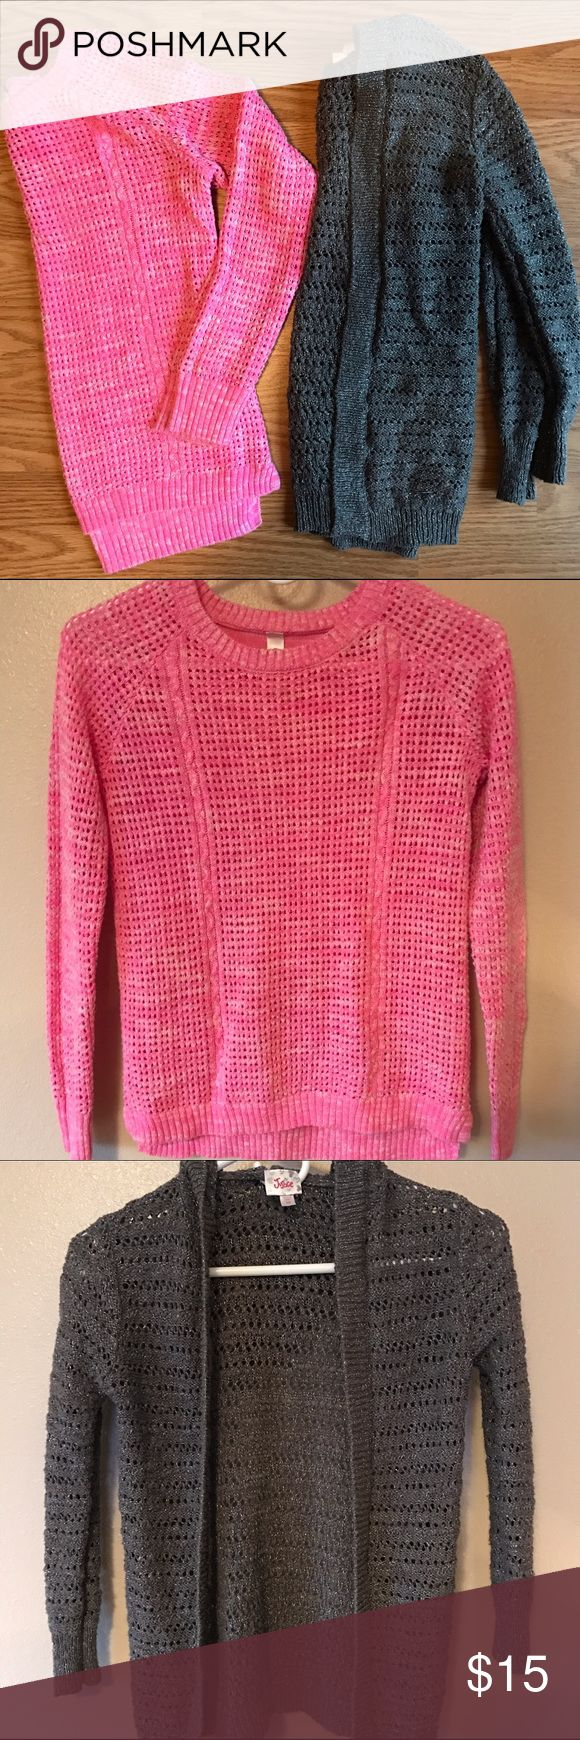 Girls Sweater Bundle Two knit sweaters. Pink sweater is pullover style and size 10/12 Cherokee brand. The gray sweater is hooded cardigan style and size 10 Justice brand. Both gently used but definitely good condition! Justice Shirts & Tops Sweaters